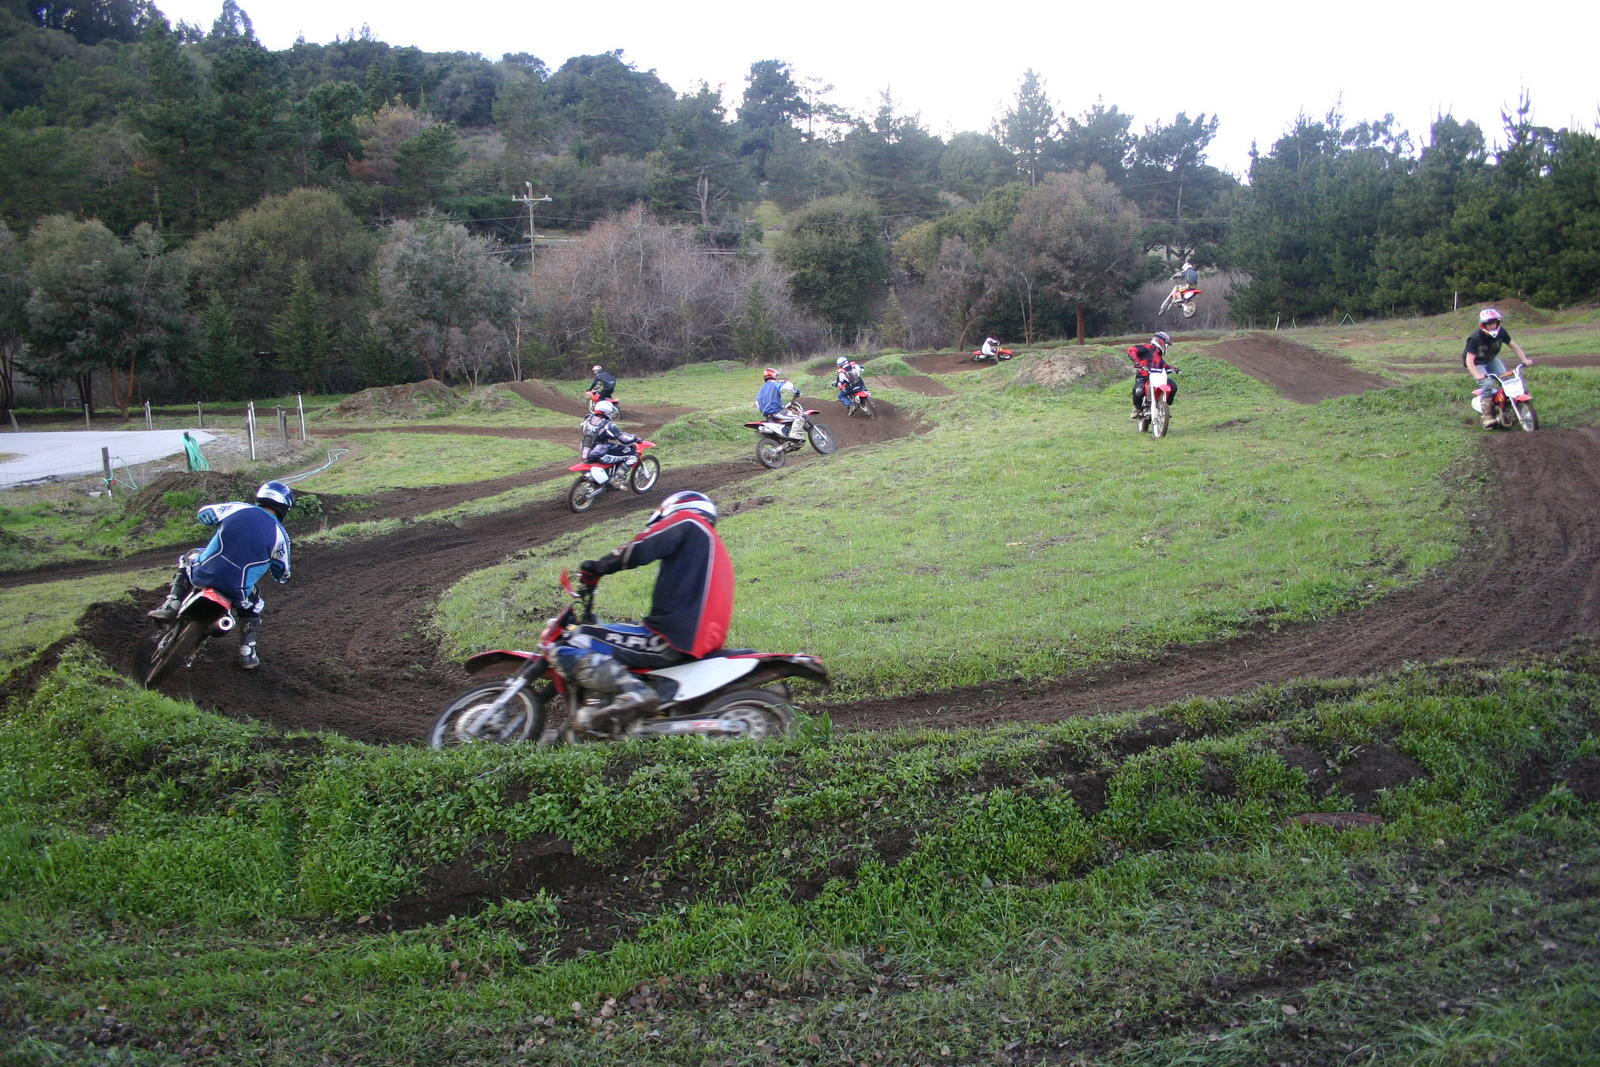 Looking For Help With Building Motocross Track San Jose Page 2 South Bay Riders